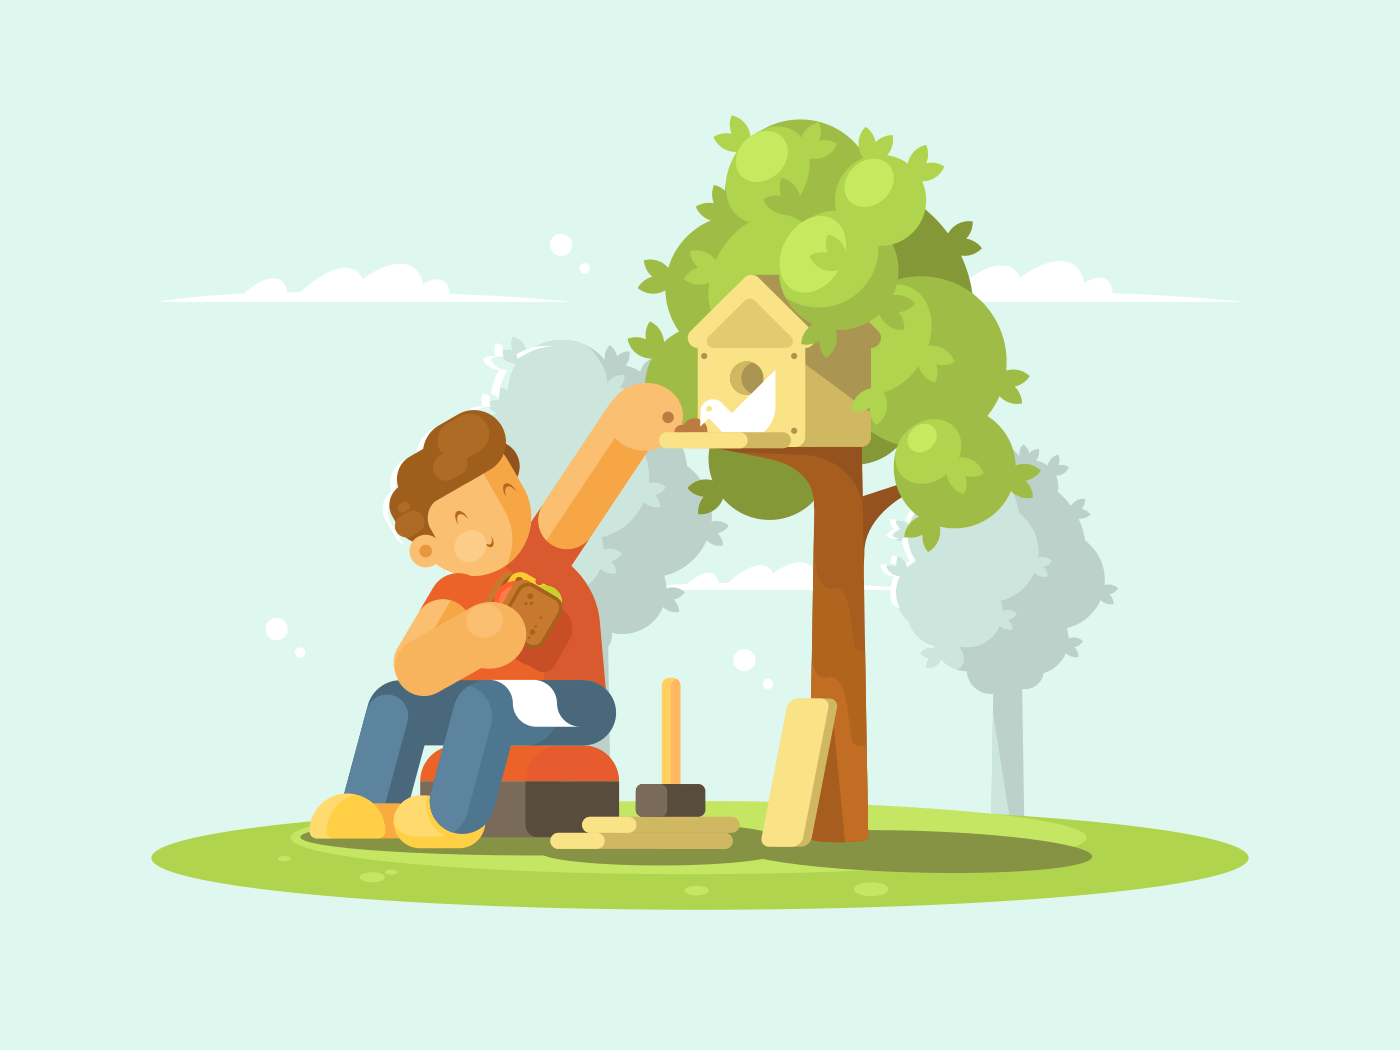 Boy feeding bird in birdhouse illustration